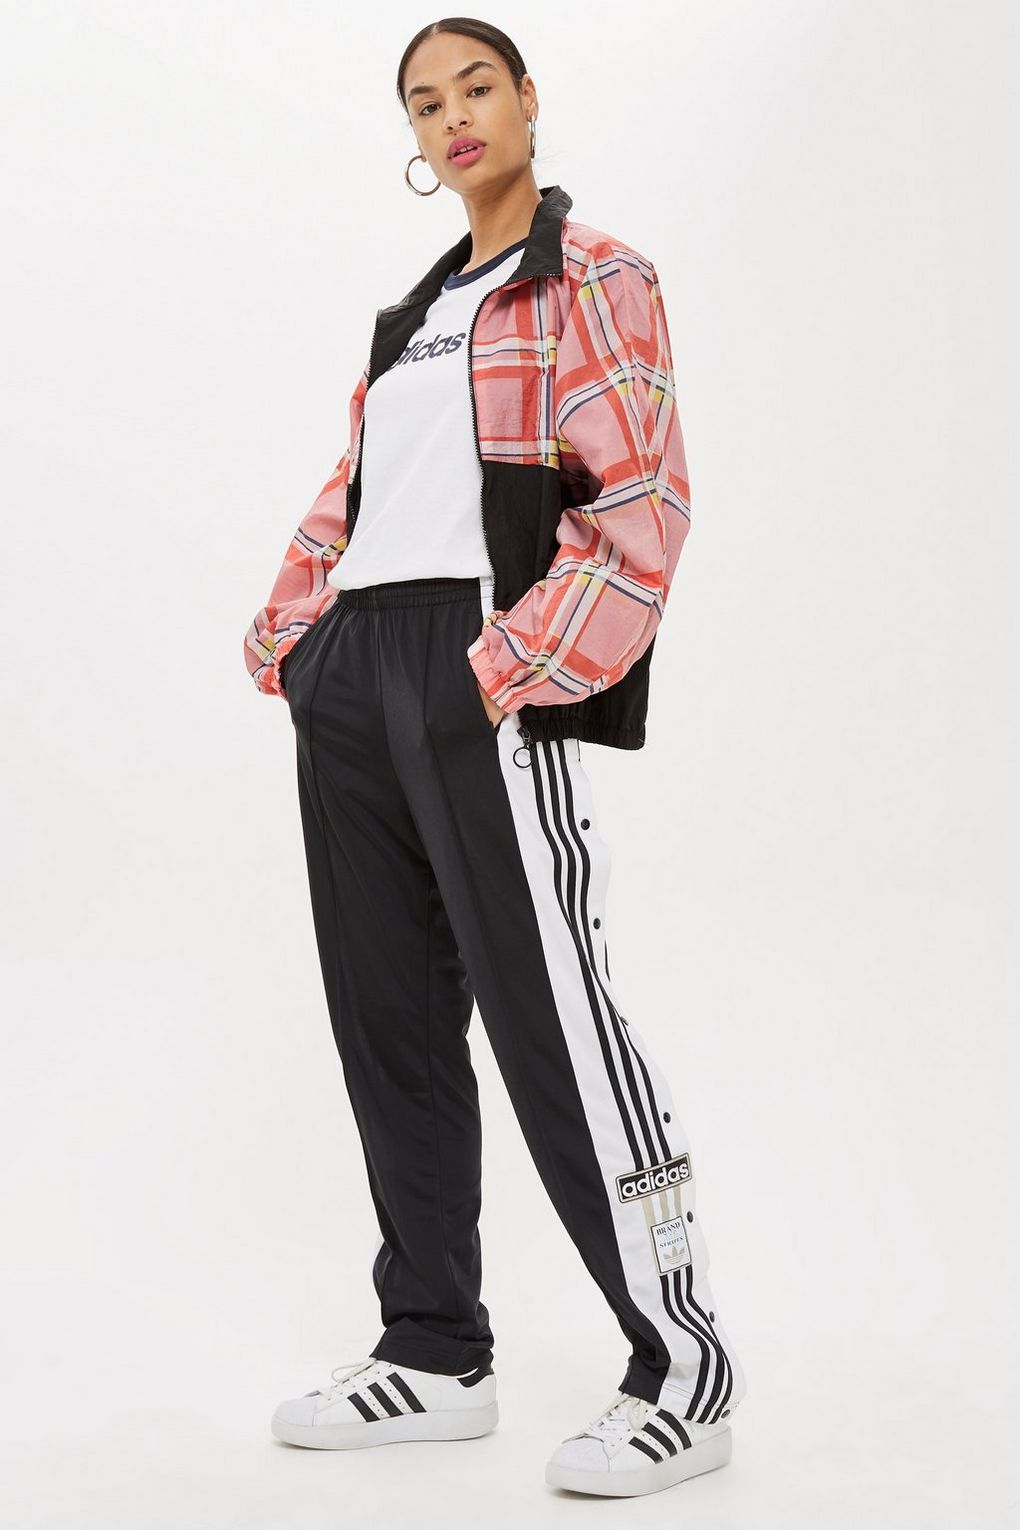 black-joggers-pants-trackpants-white-graphic-tee-pink-light-jacket-bomber-brun-bun-hoops-white-shoe-sneakers-fall-winter-weekend.jpg